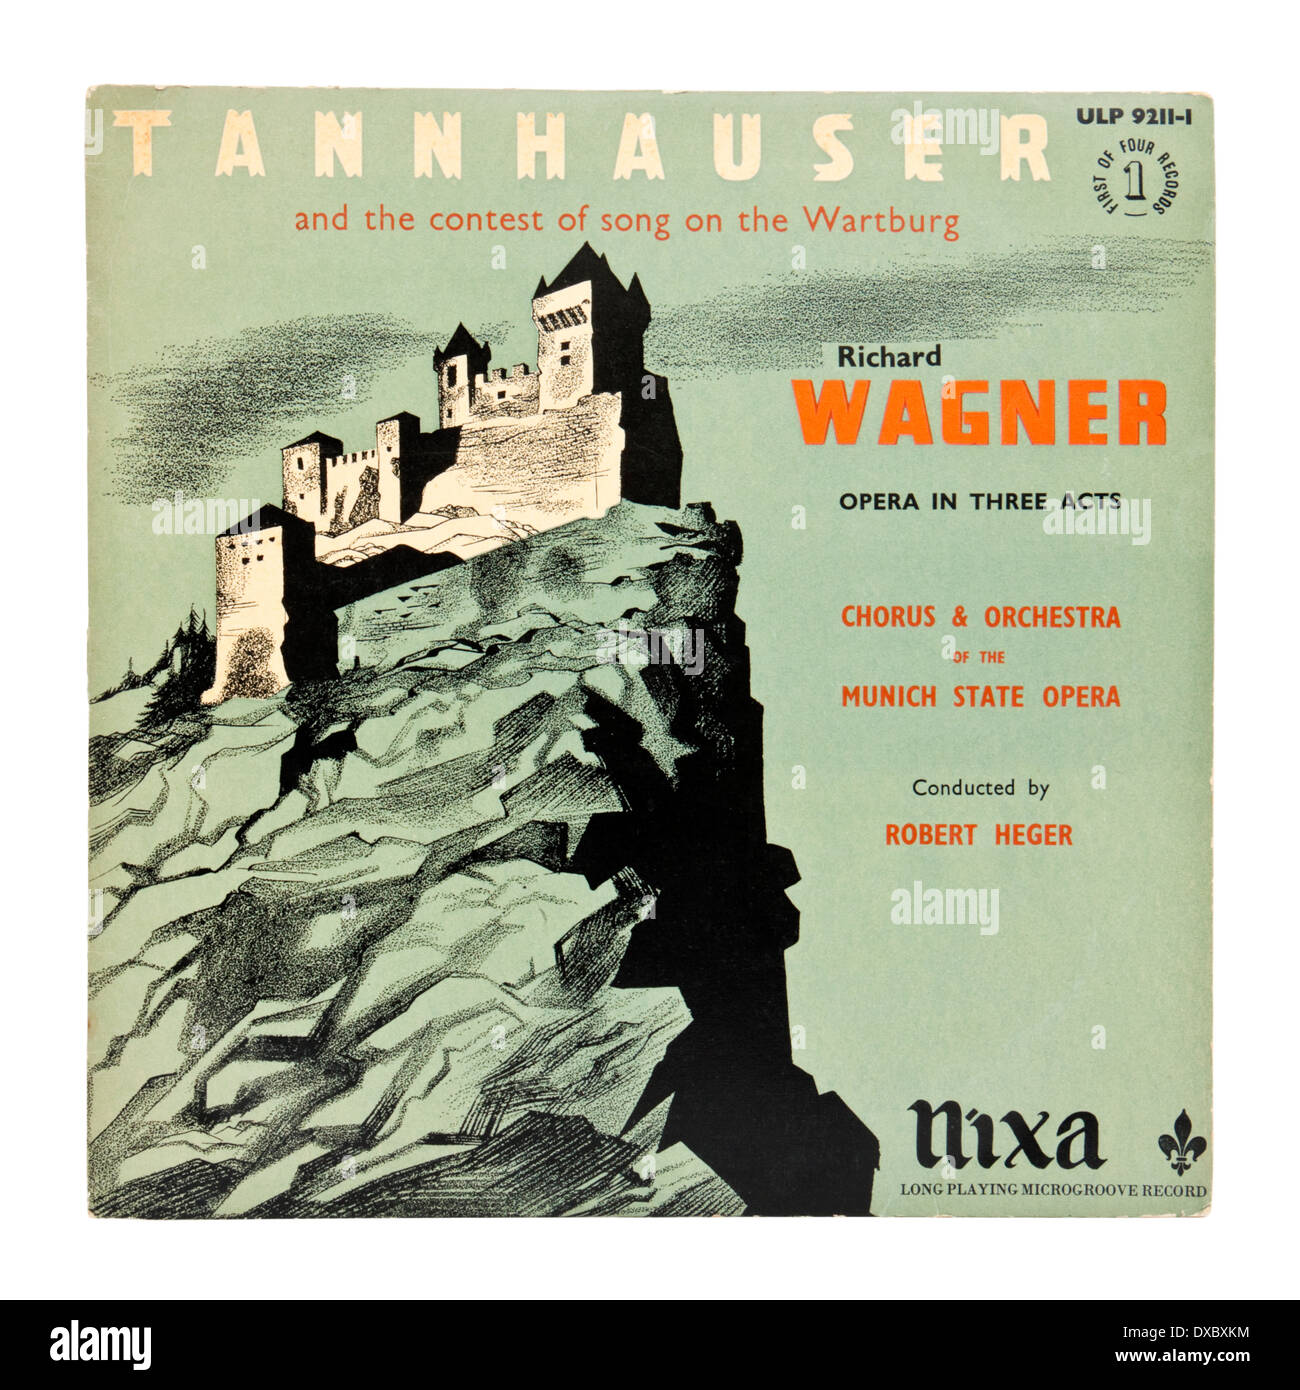 Classical vinyl record / LP - 'Tannhauser', Opera in Three Acts by Richard Wagner. Cover shows the Wartburg Castle in Germany. - Stock Image